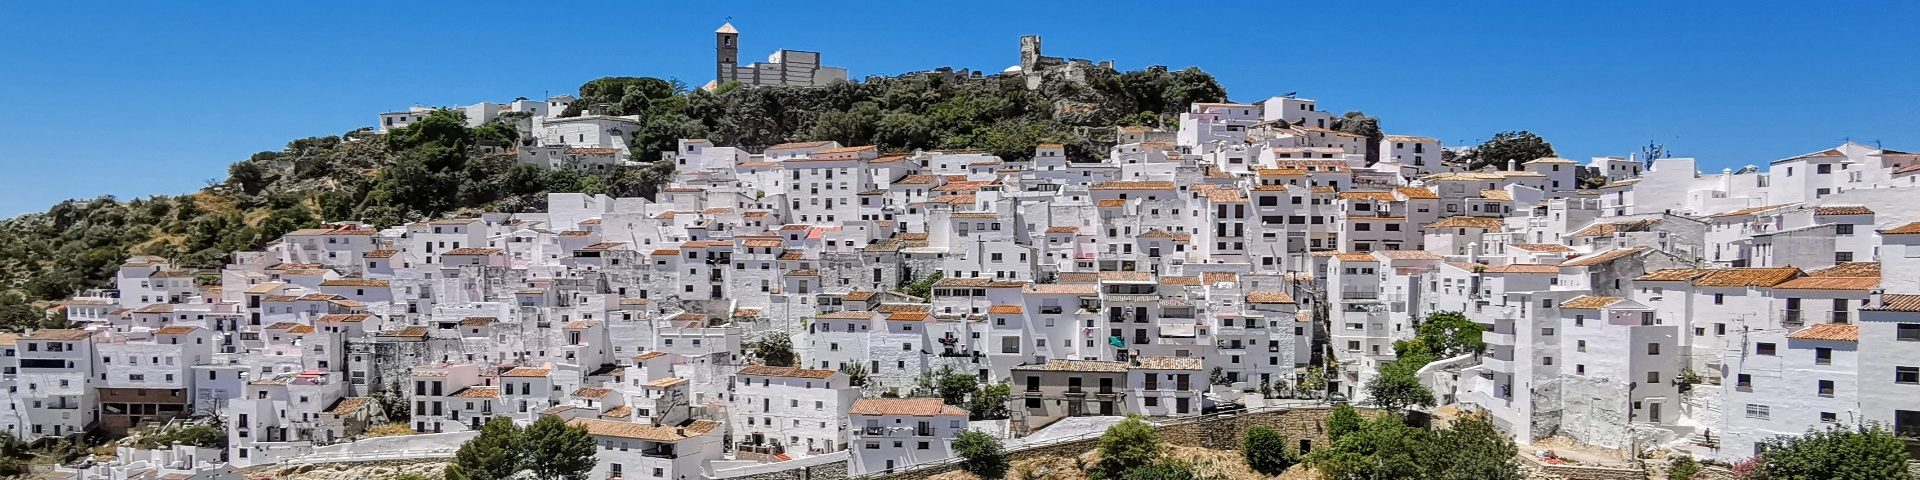 Photo of the white-washed village of Casares